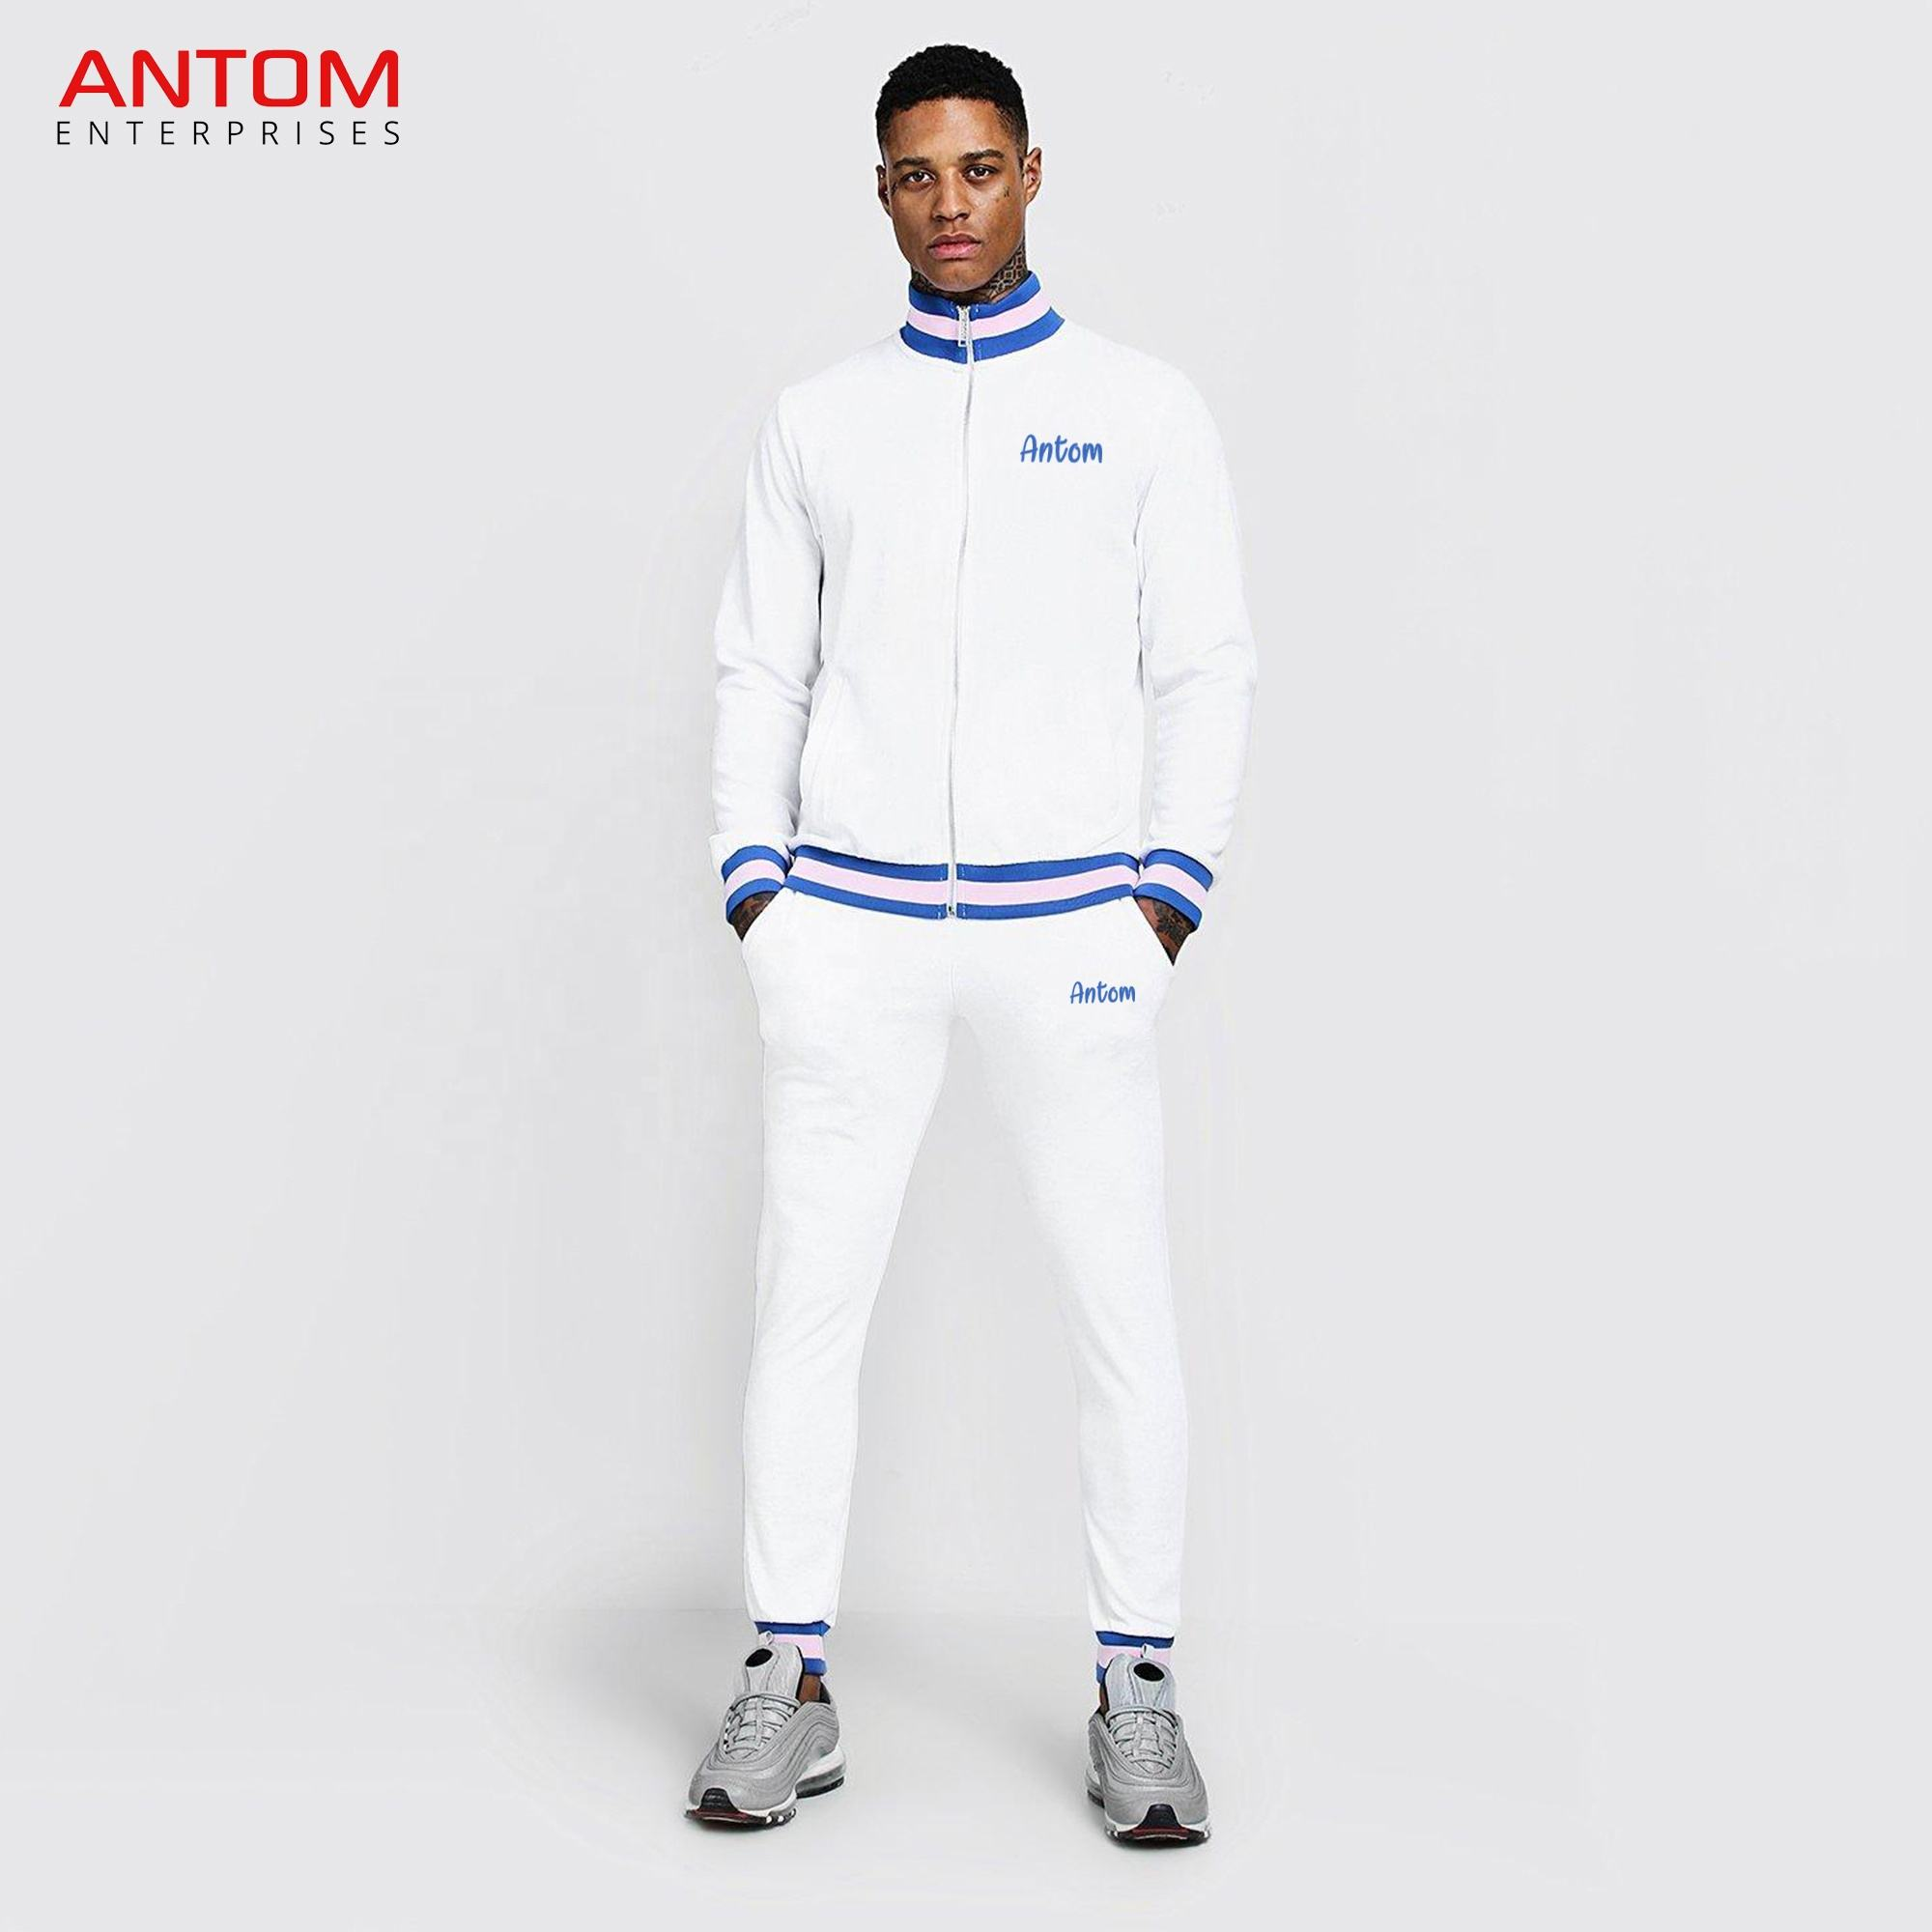 High Quality Pullover Tracksuit For Men / Polyester Nylon Track Suit / New Design Track Suit Made by Antom Enterprises